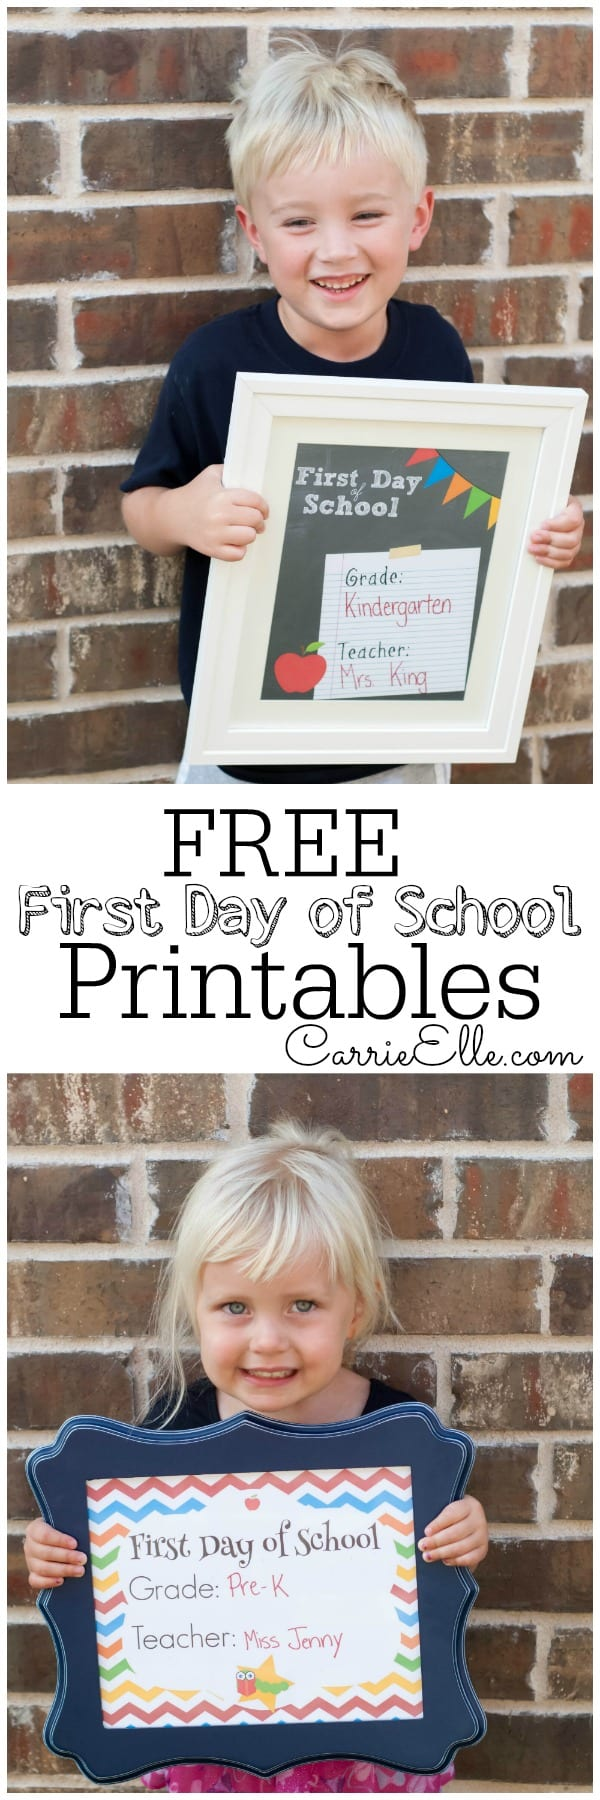 FREE First Day of School Printables 9